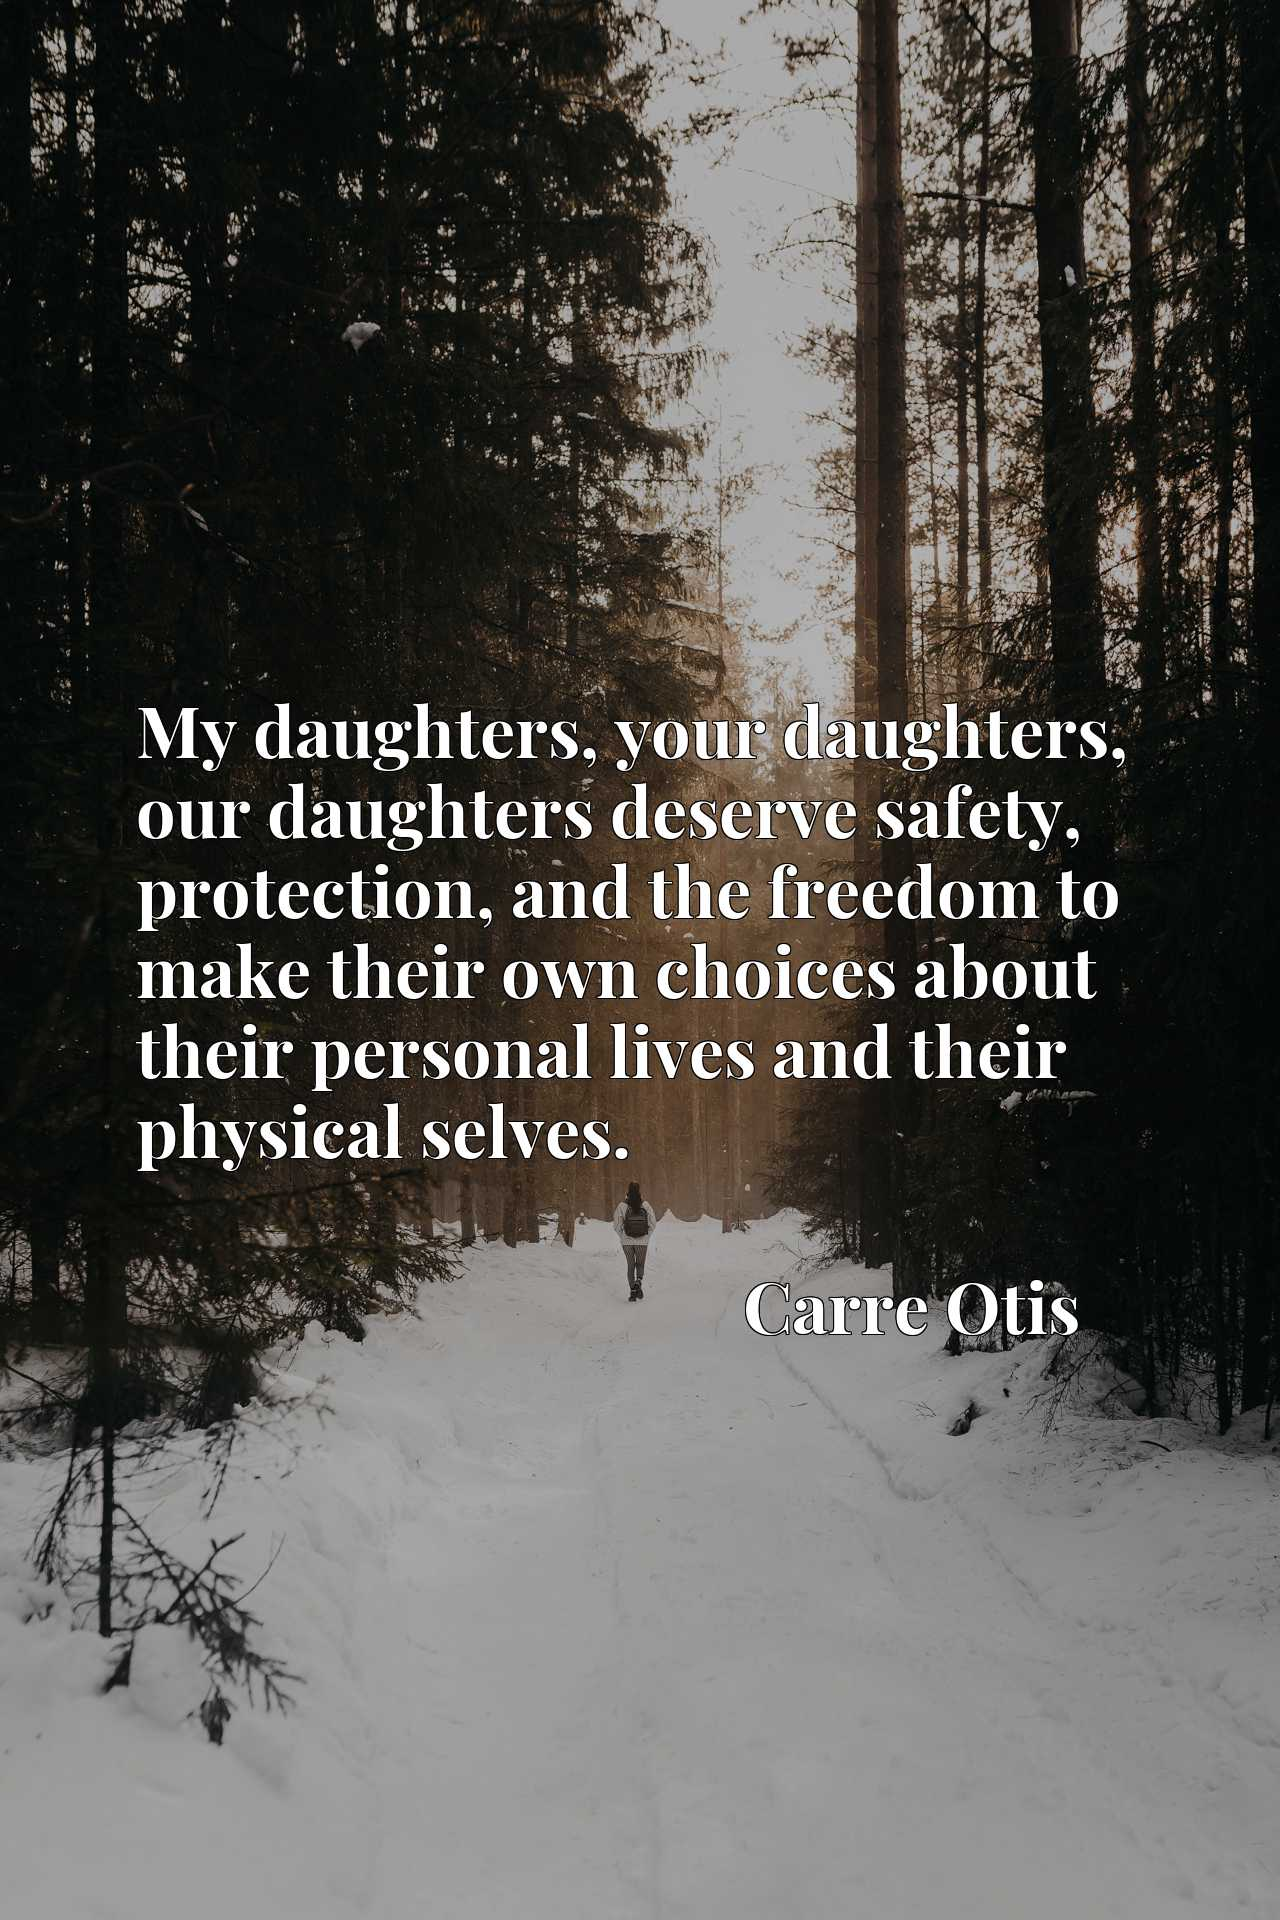 My daughters, your daughters, our daughters deserve safety, protection, and the freedom to make their own choices about their personal lives and their physical selves.